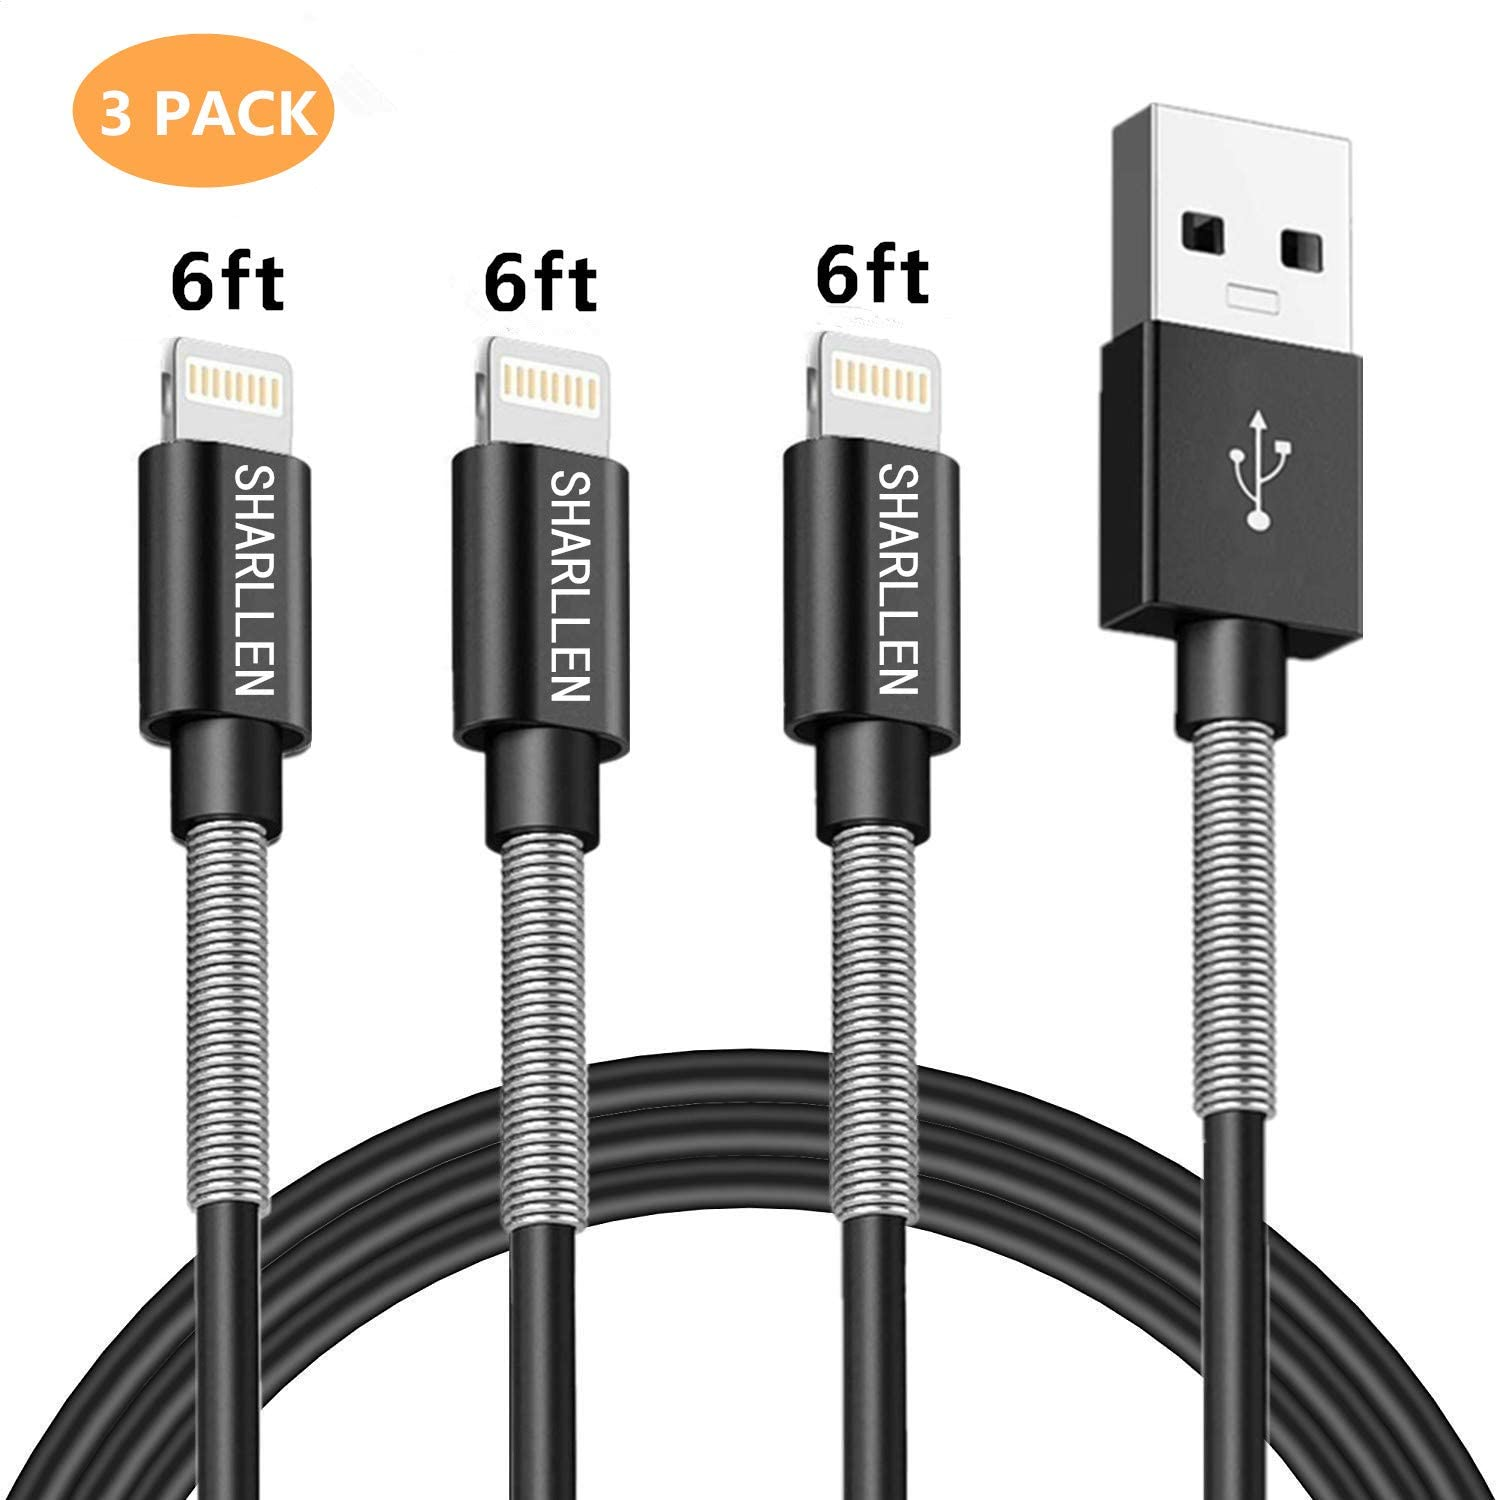 iPhone Charger Cable Mfi Certified Sharllen 3 Pack 6FT Lightning Cable Spring Fast Charging Long Cord USB Charging Cable Compatible iPhone XS Max XR X 8 8Plus 7 7P 6S iPad iPod Black